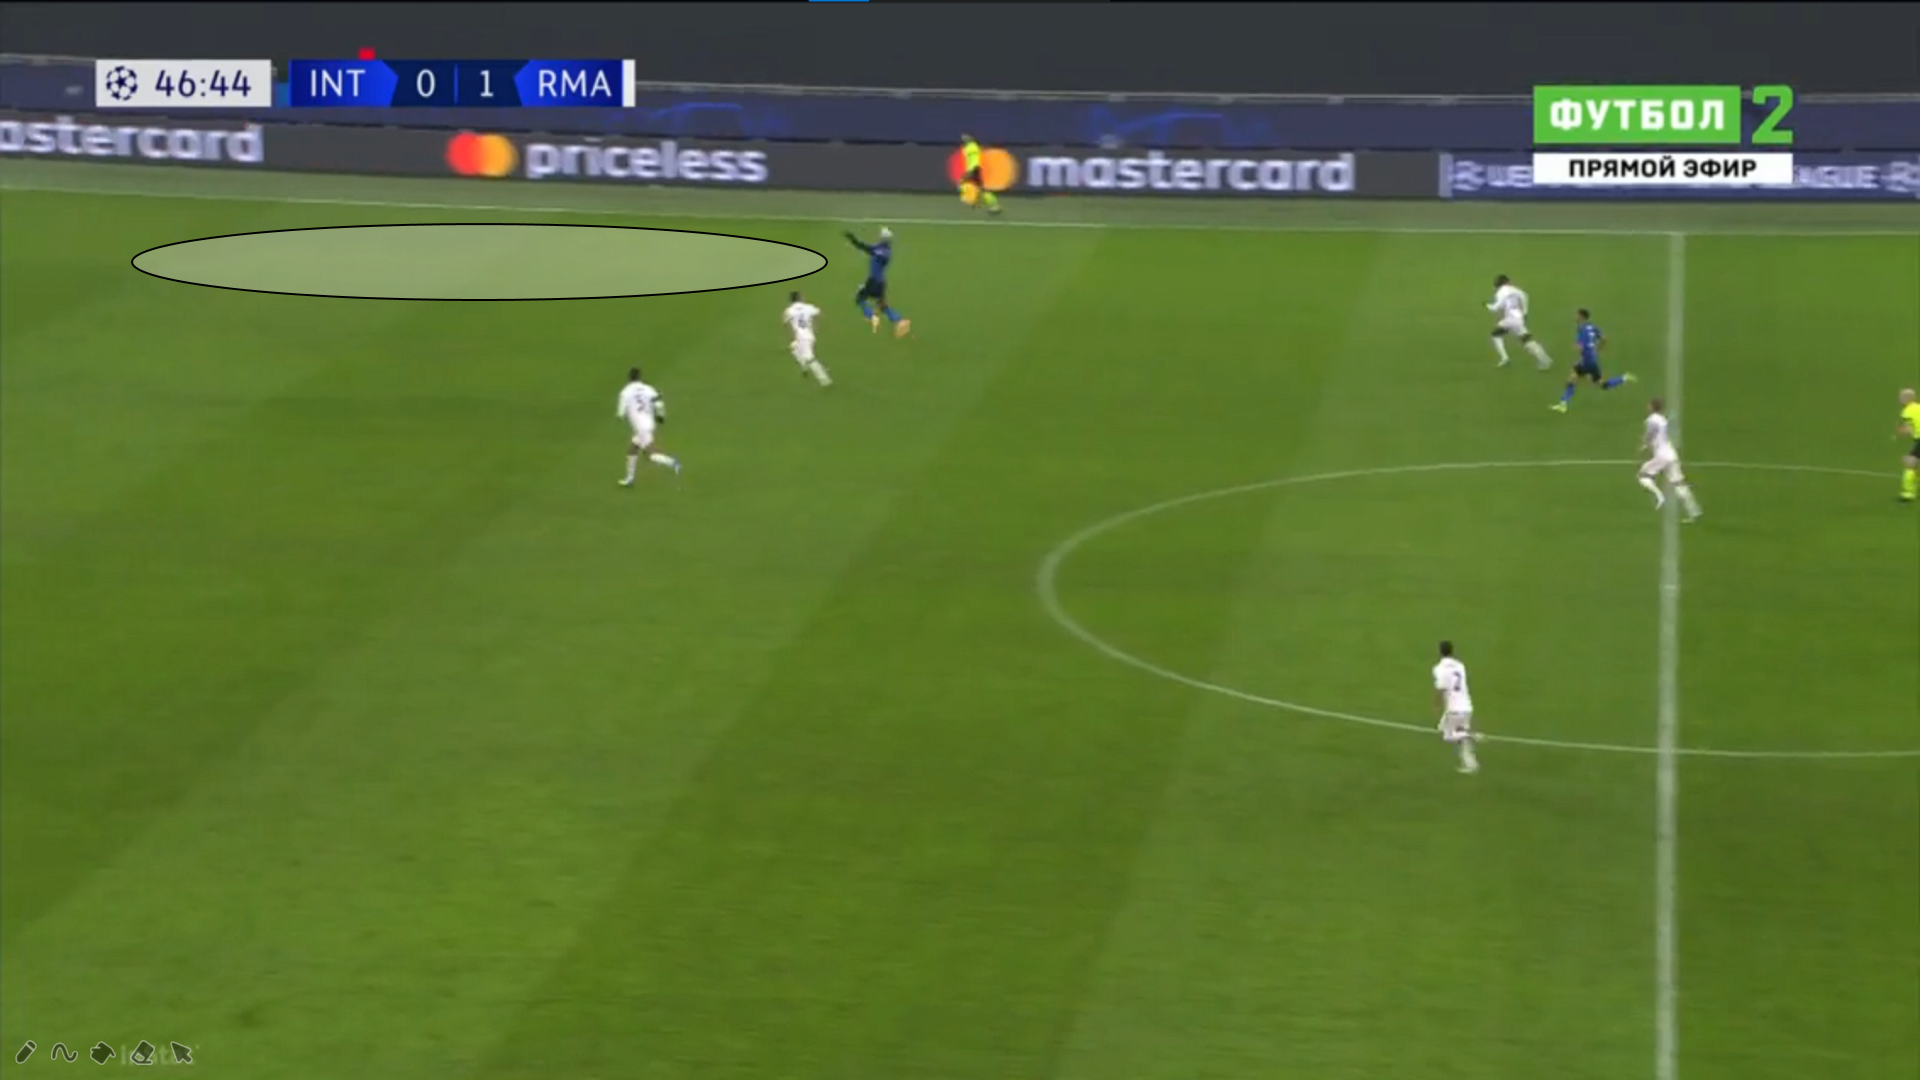 UEFA Champions League 2020/21: Inter Milan vs Real Madrid – tactical analysis